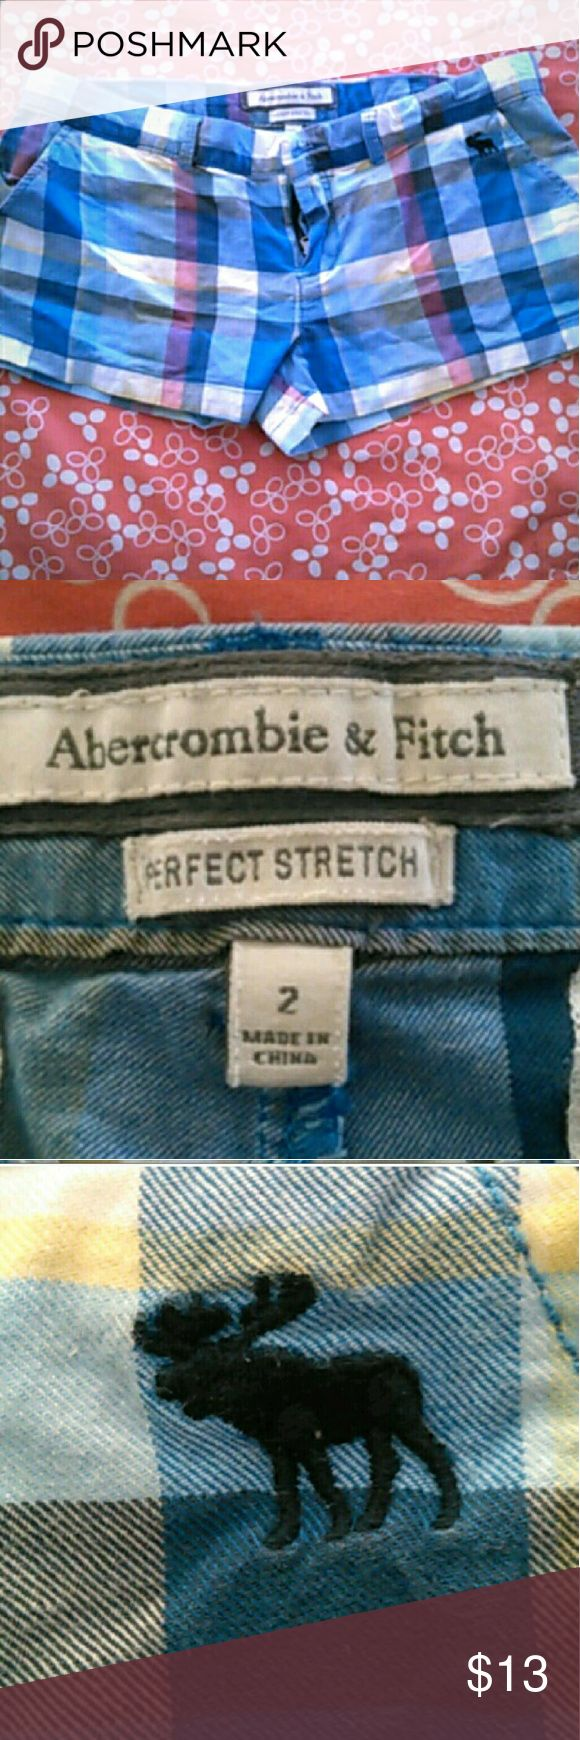 Abercrombie And Fitch Shorts Size 2 Ambercrombie and Fitch Plaid Shorts, size 2 Abercrombie & Fitch Shorts